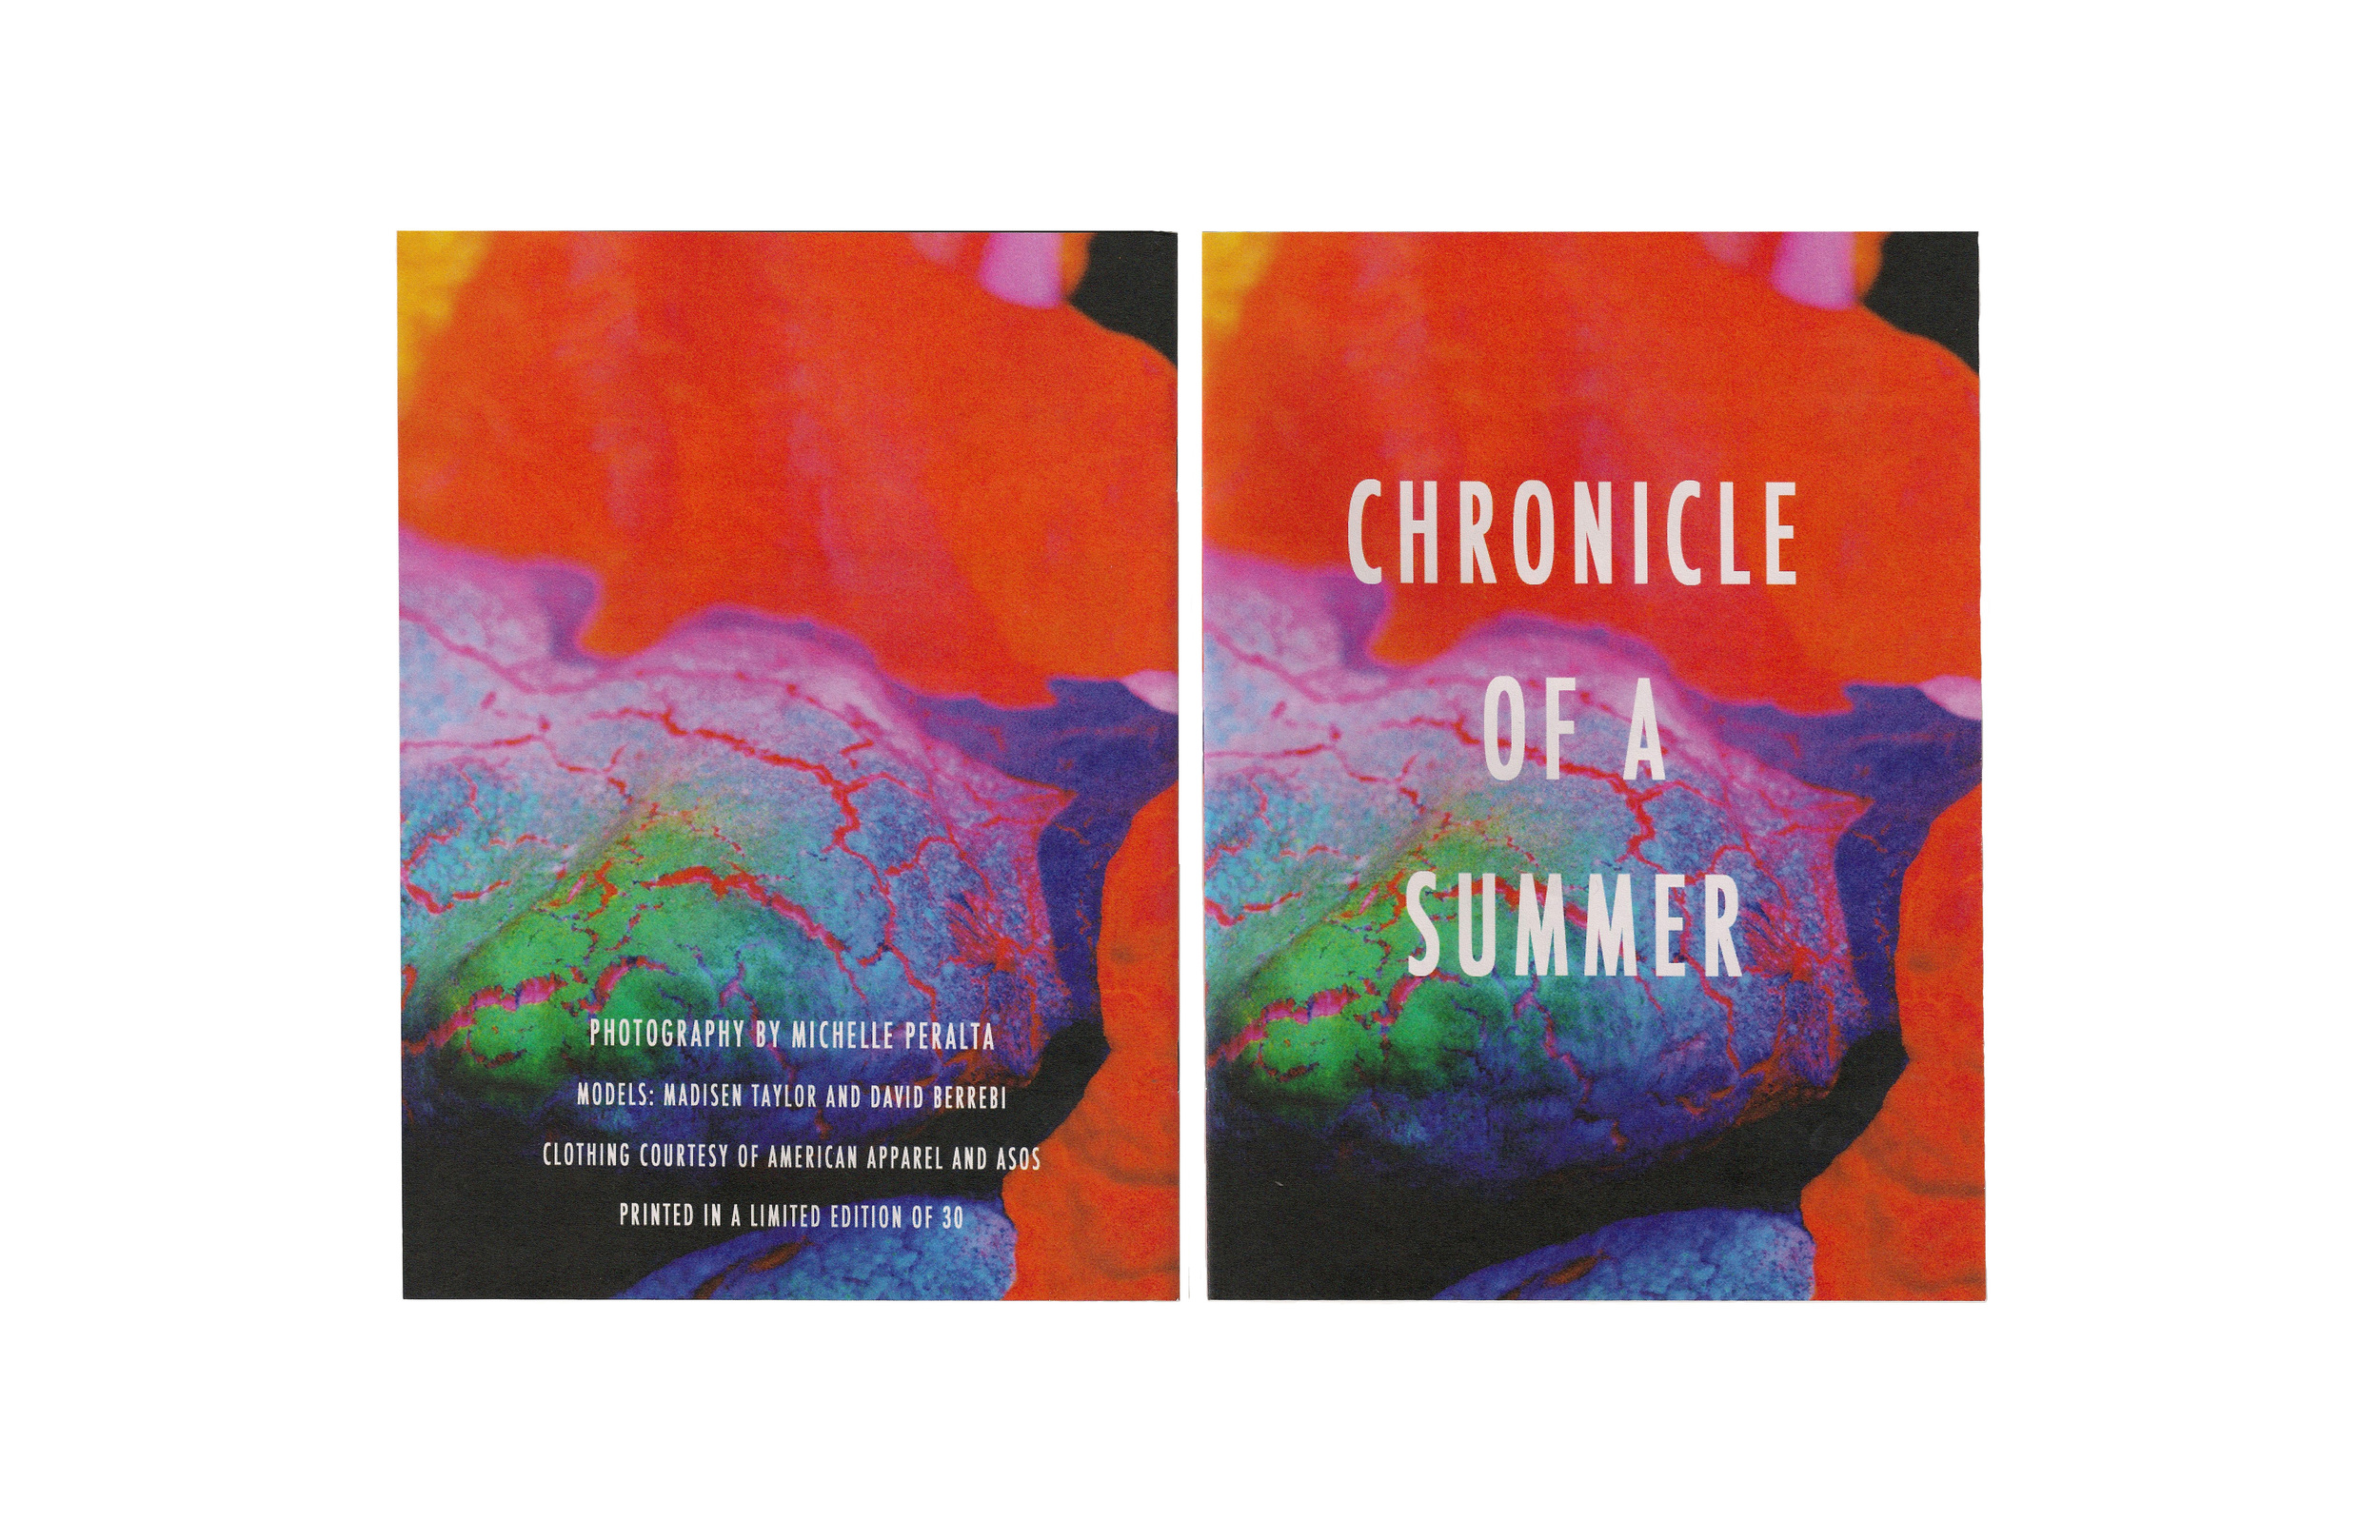 "Chronicle of a Summer    7 "" x 9.625 "" Newsprint booklet  32 Pages  Staple bound  Printed in a limited edition of 30"